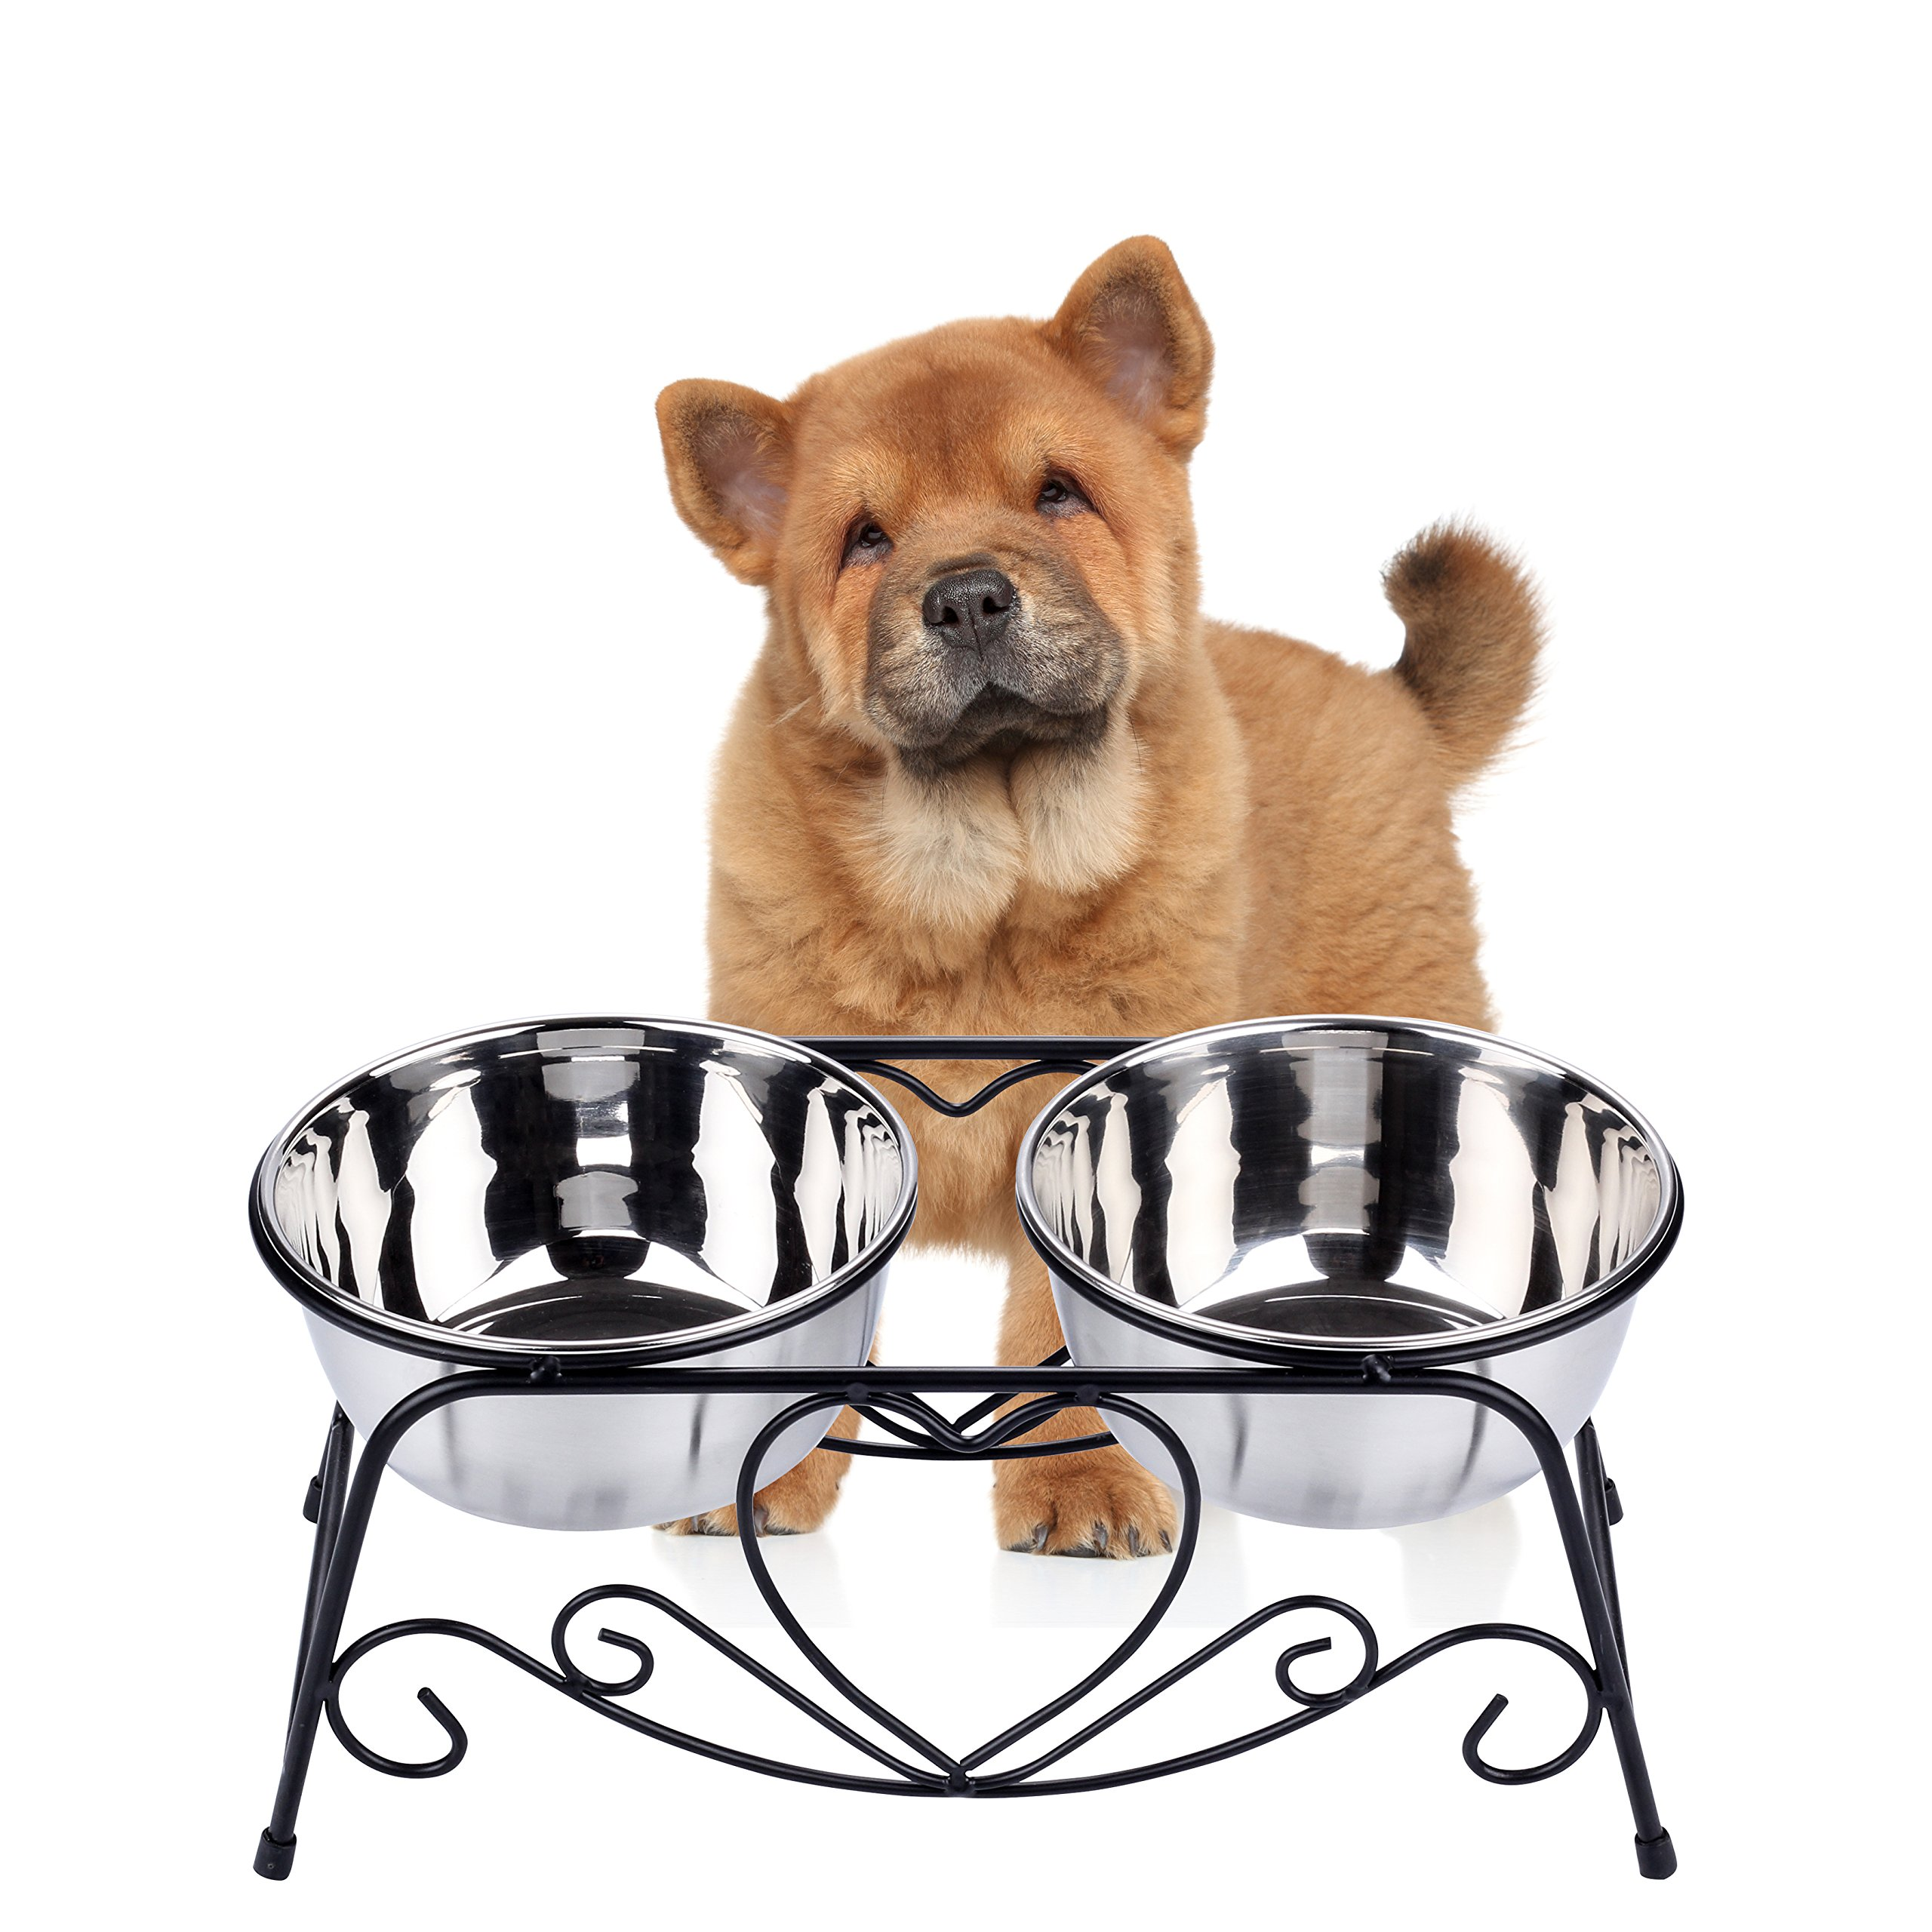 CICO Pet Feeder for Dog Cat, Stainless Steel Food and Water Bowls with Iron Stand by CICO